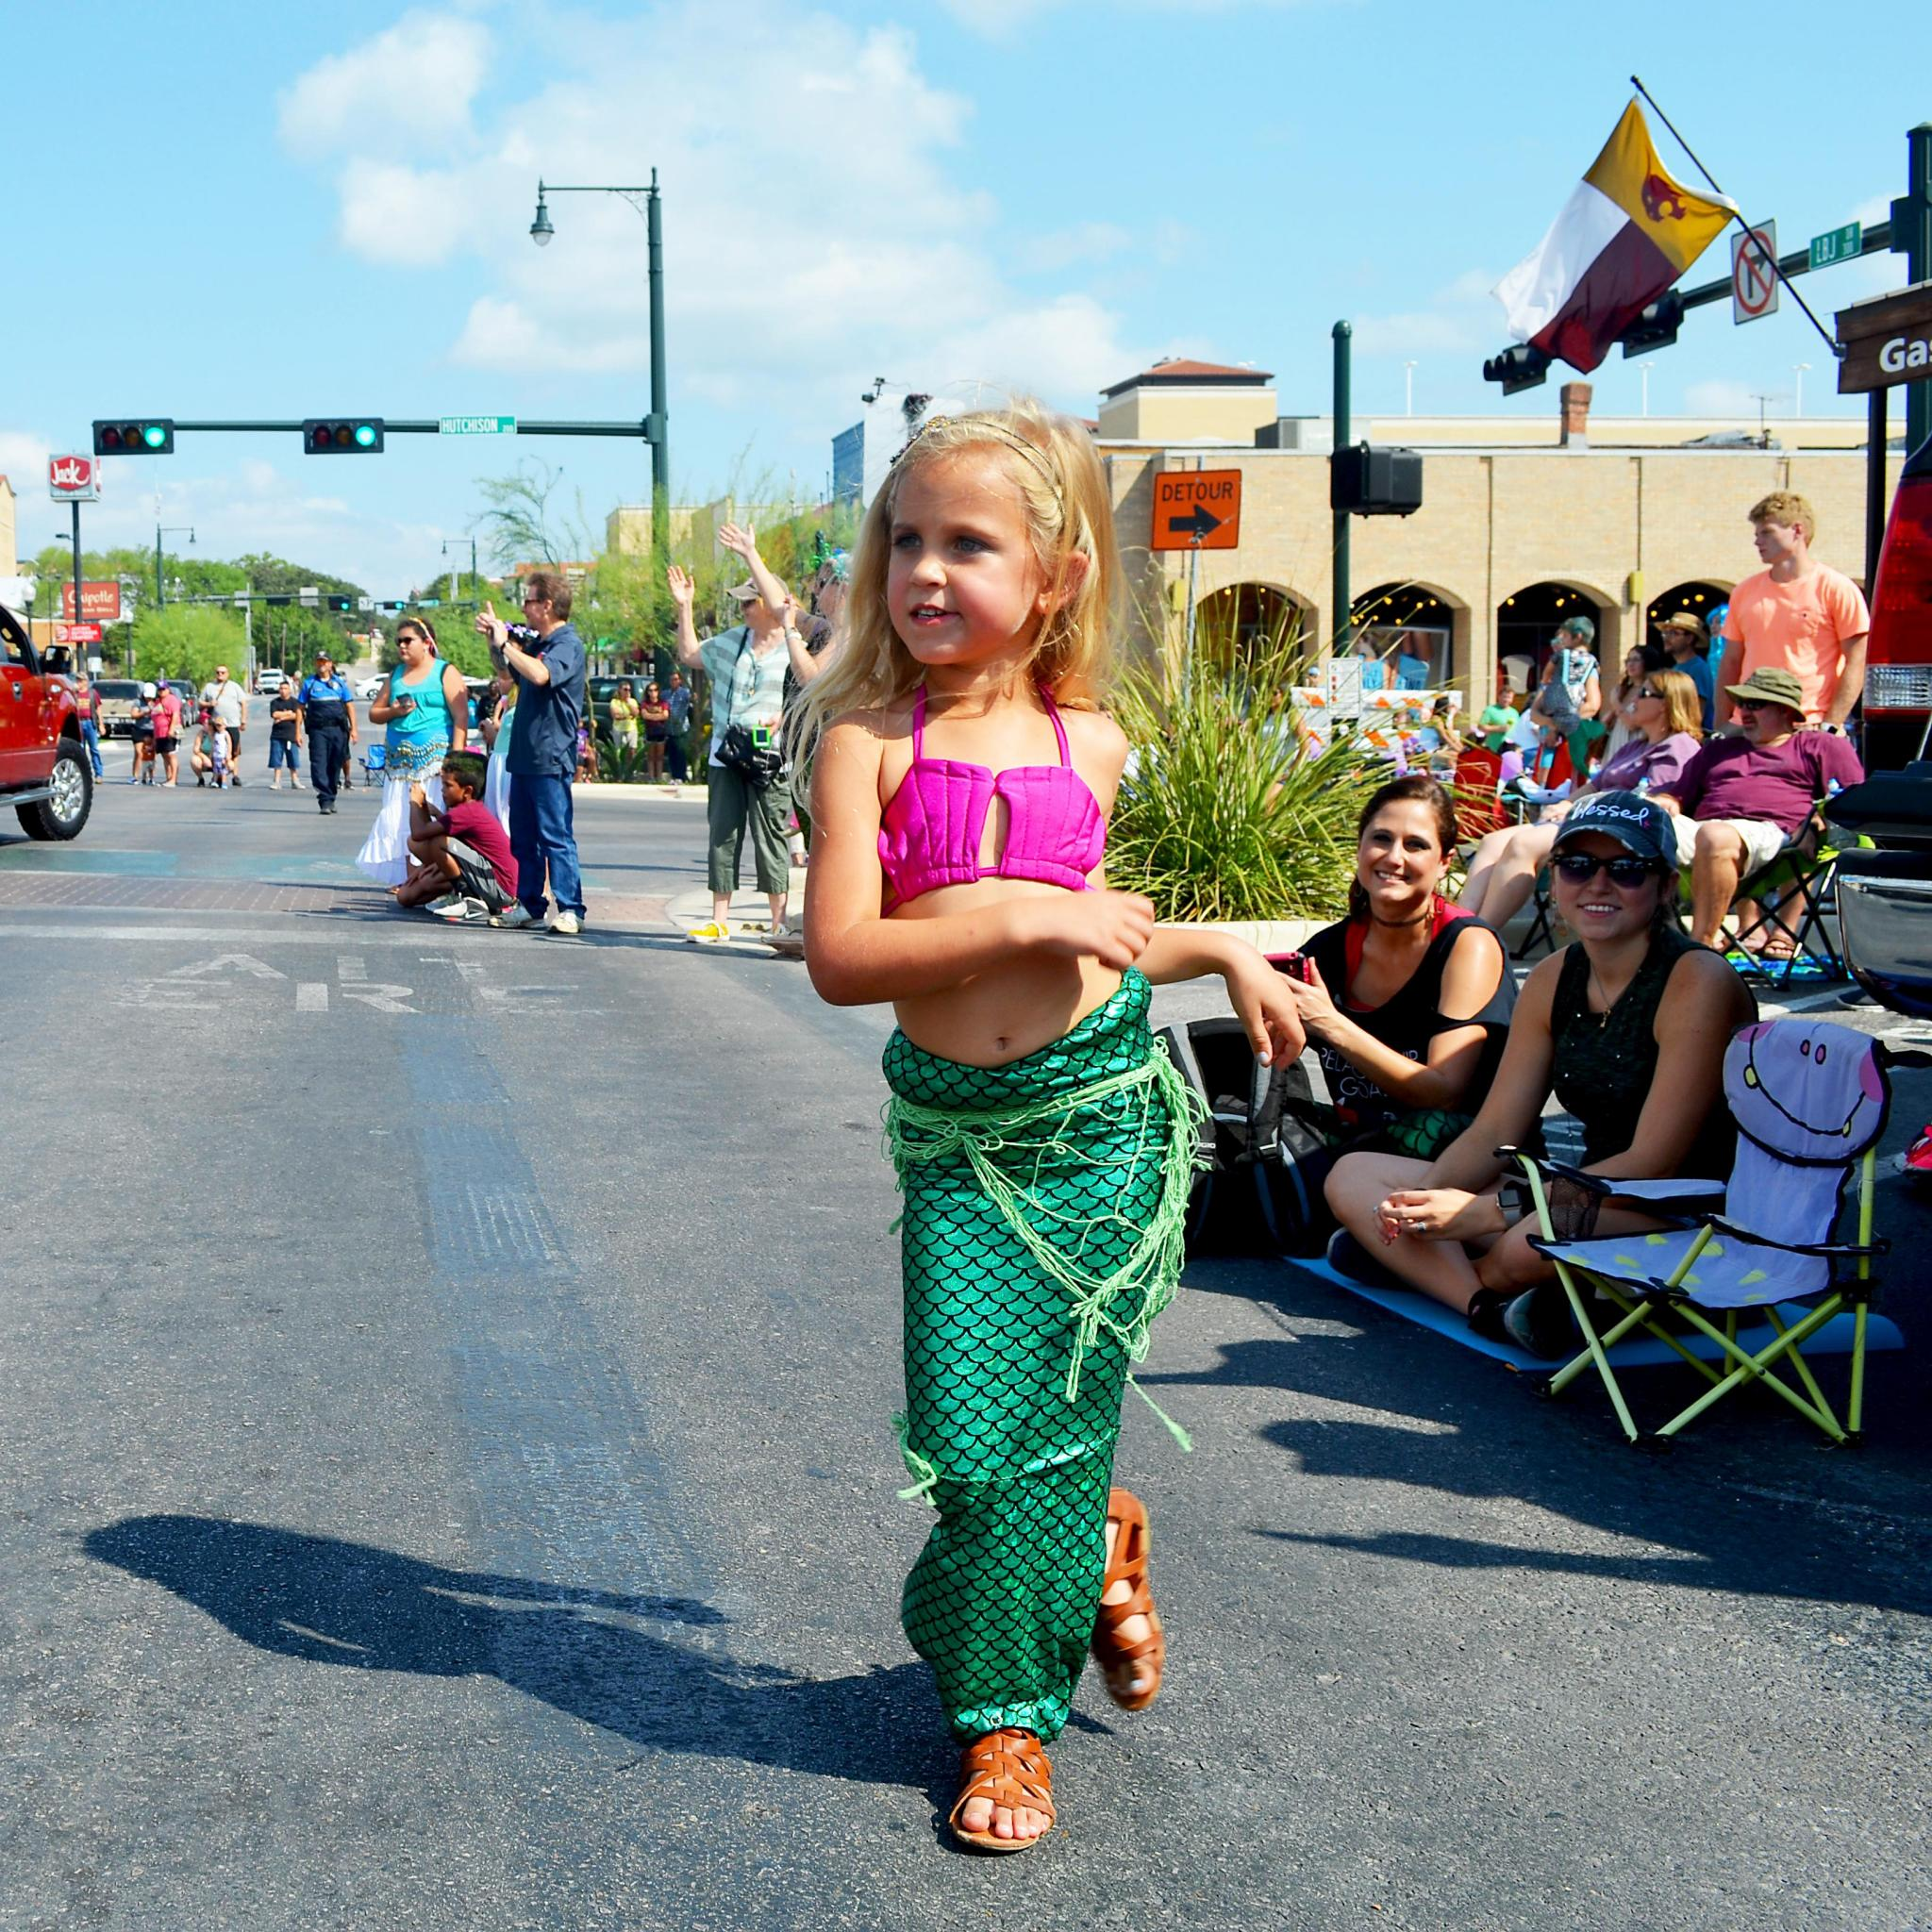 Kamryn Harvay of Gonzales traveled all the way to San Marcos to get a close view of the Mermaid Promenade.